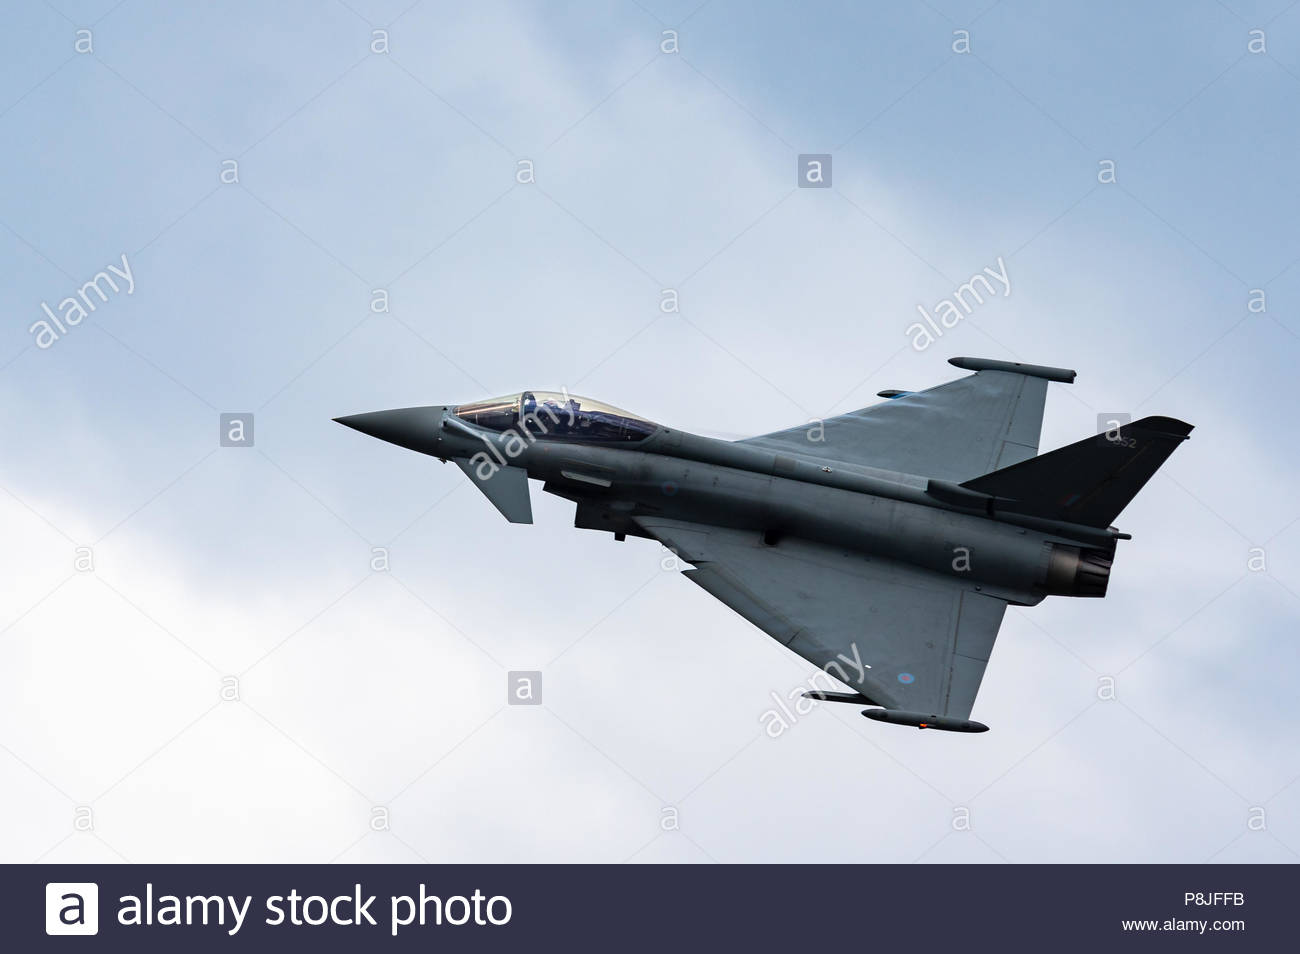 An image of a RAF Typhoon Euro Fighter taking off, full afterburners, vertical - Stock Image